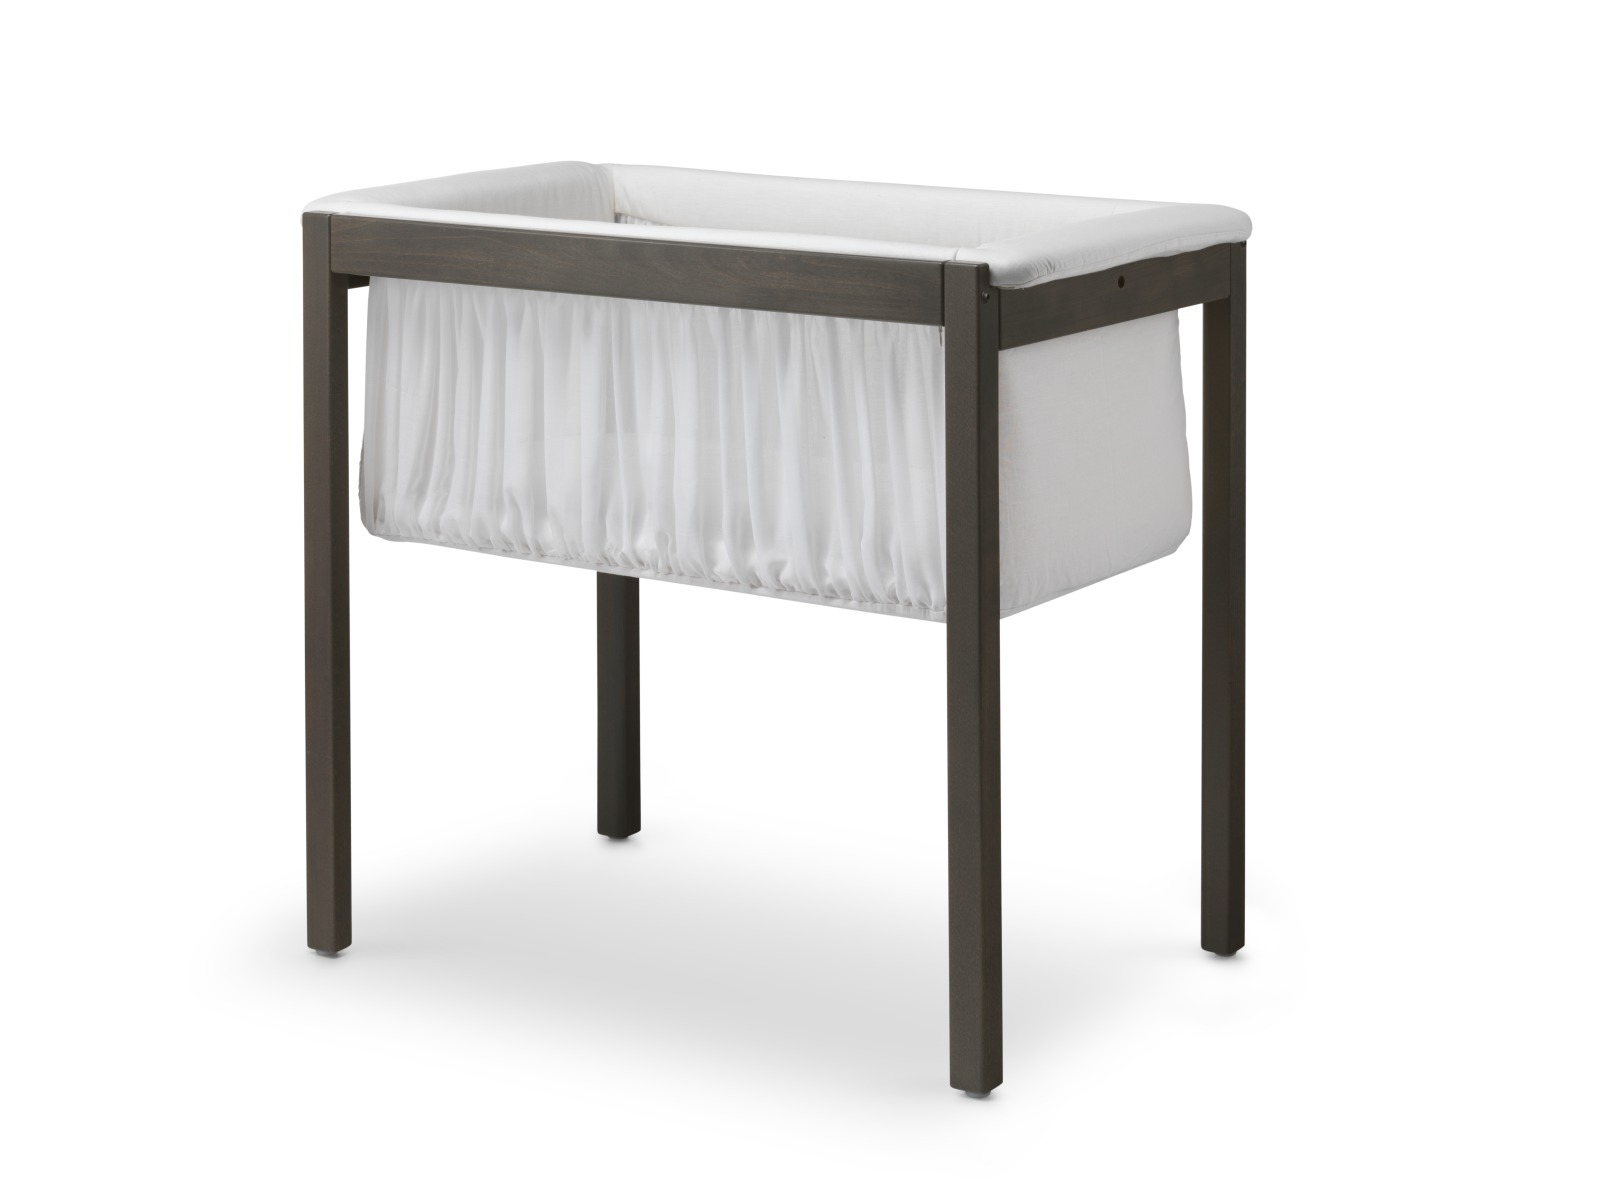 Stokke® Home Cradle, on stand. Hazy Grey.